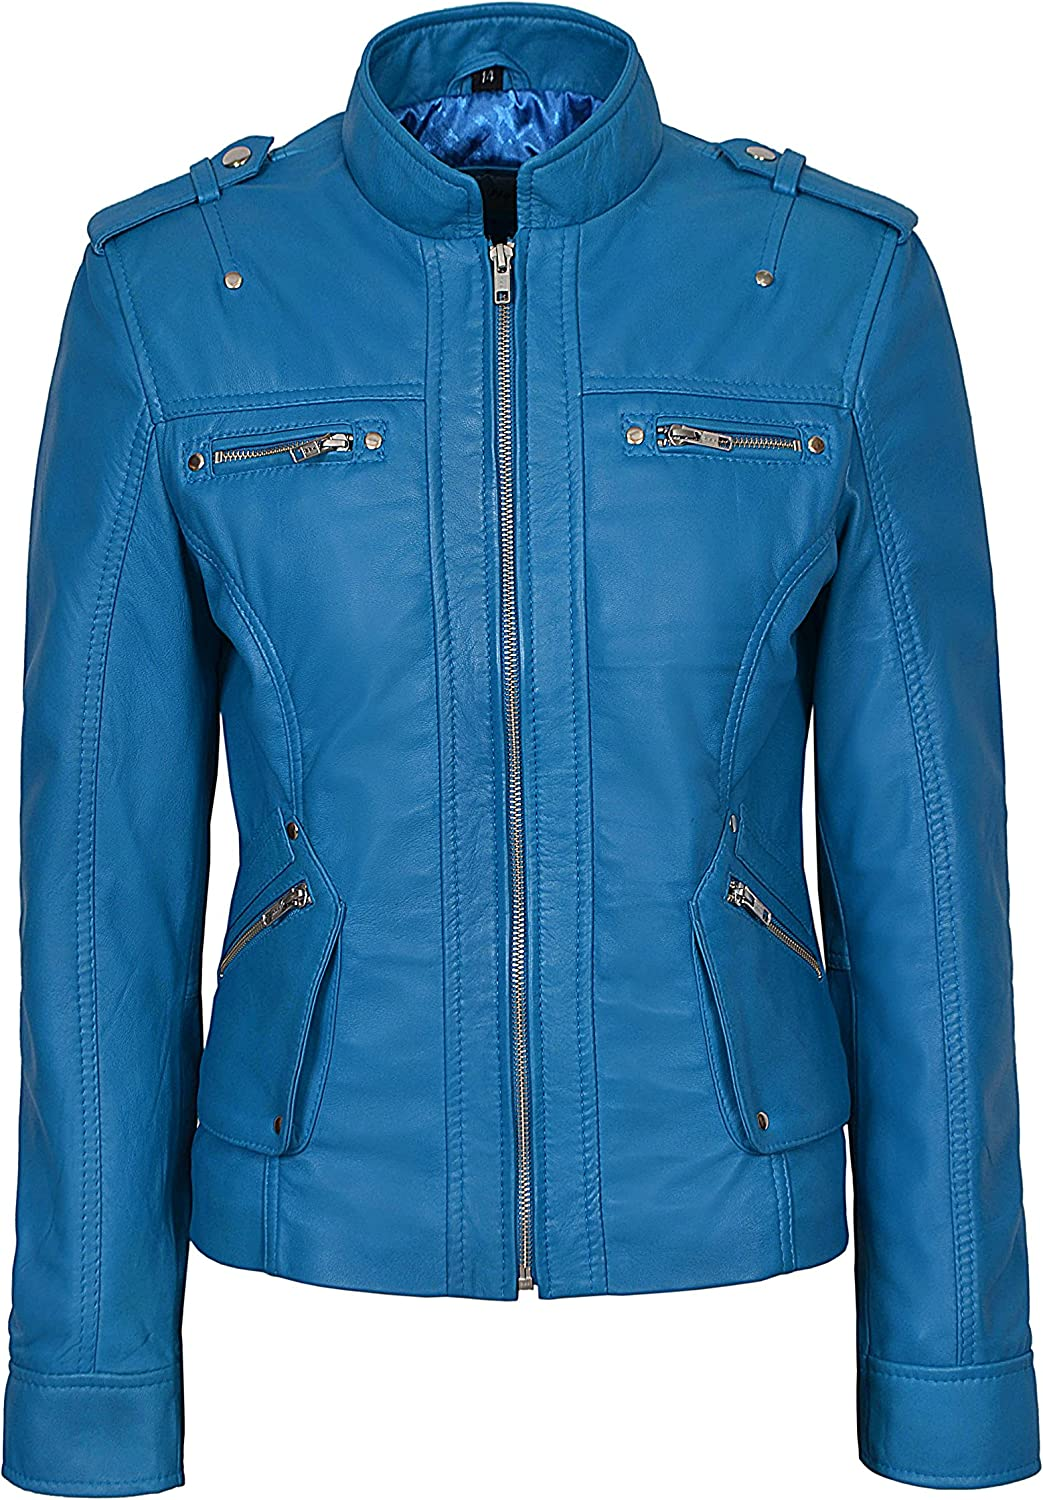 SMART RANGE New Ladies 1148 Electric bluee Military Style Casual Luxury Real Soft Napa Leather Jacket